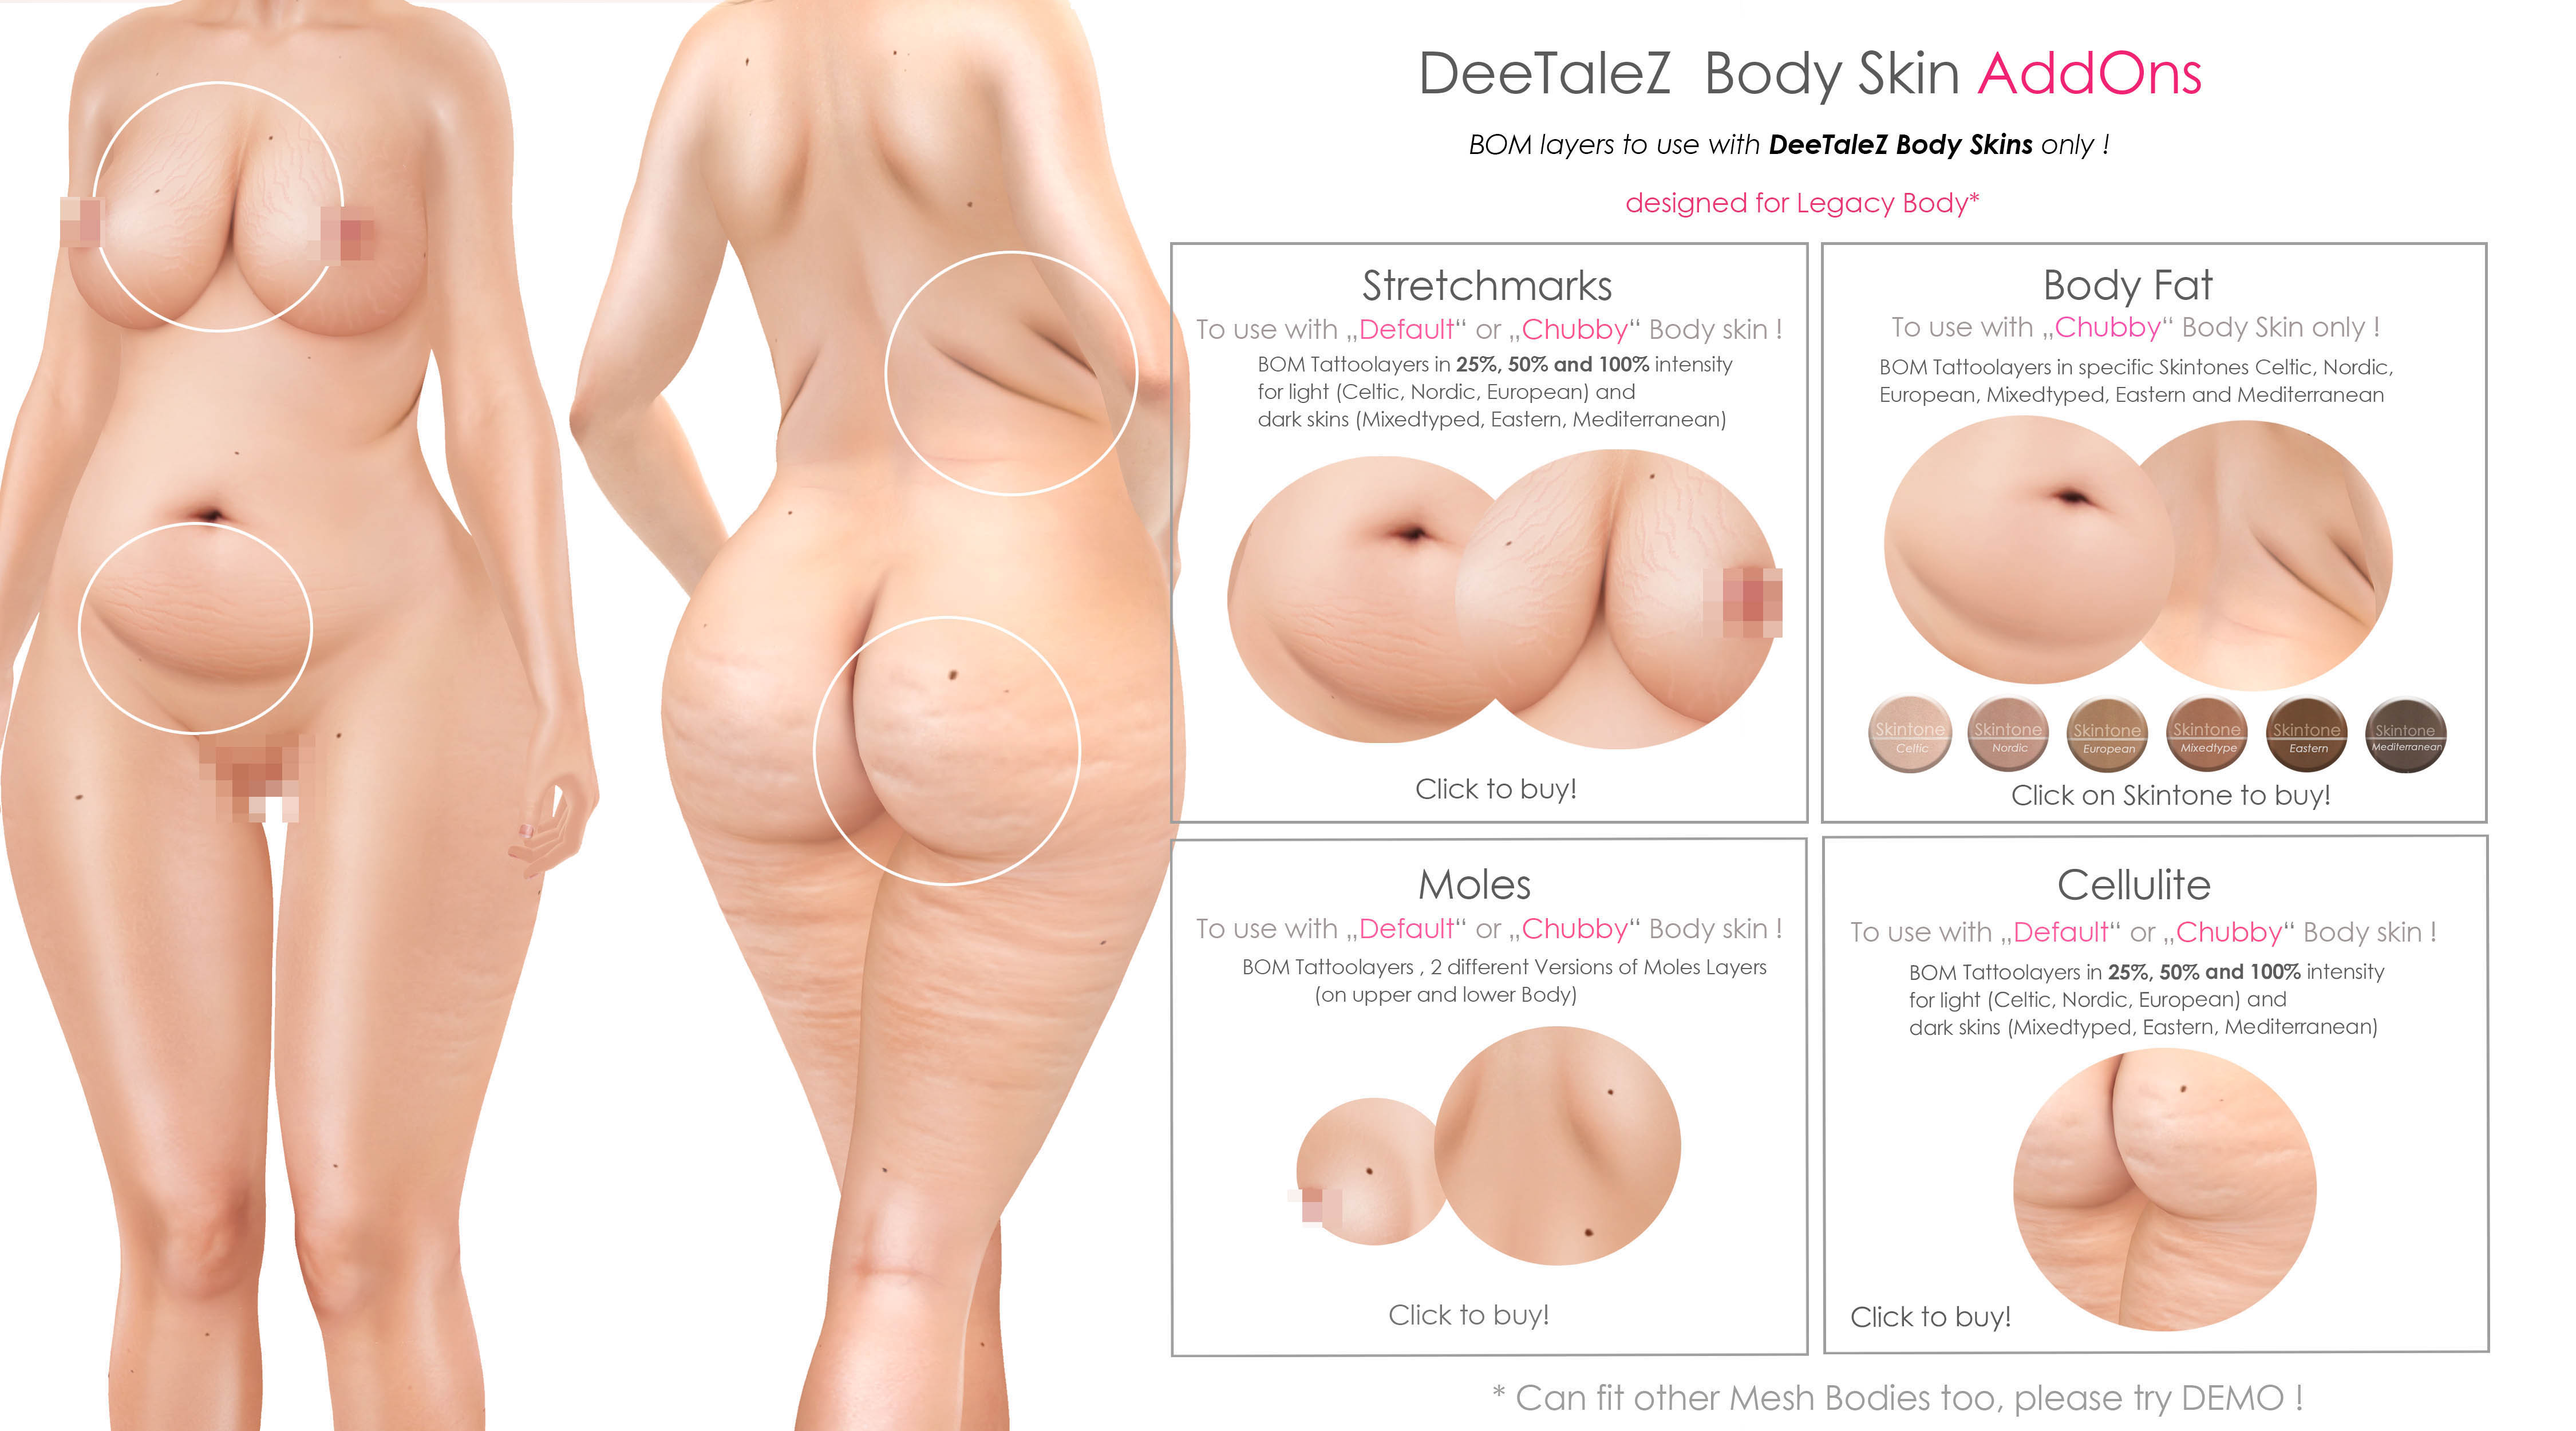 BODY ADDONS VENDOR chubby skin FAT PG